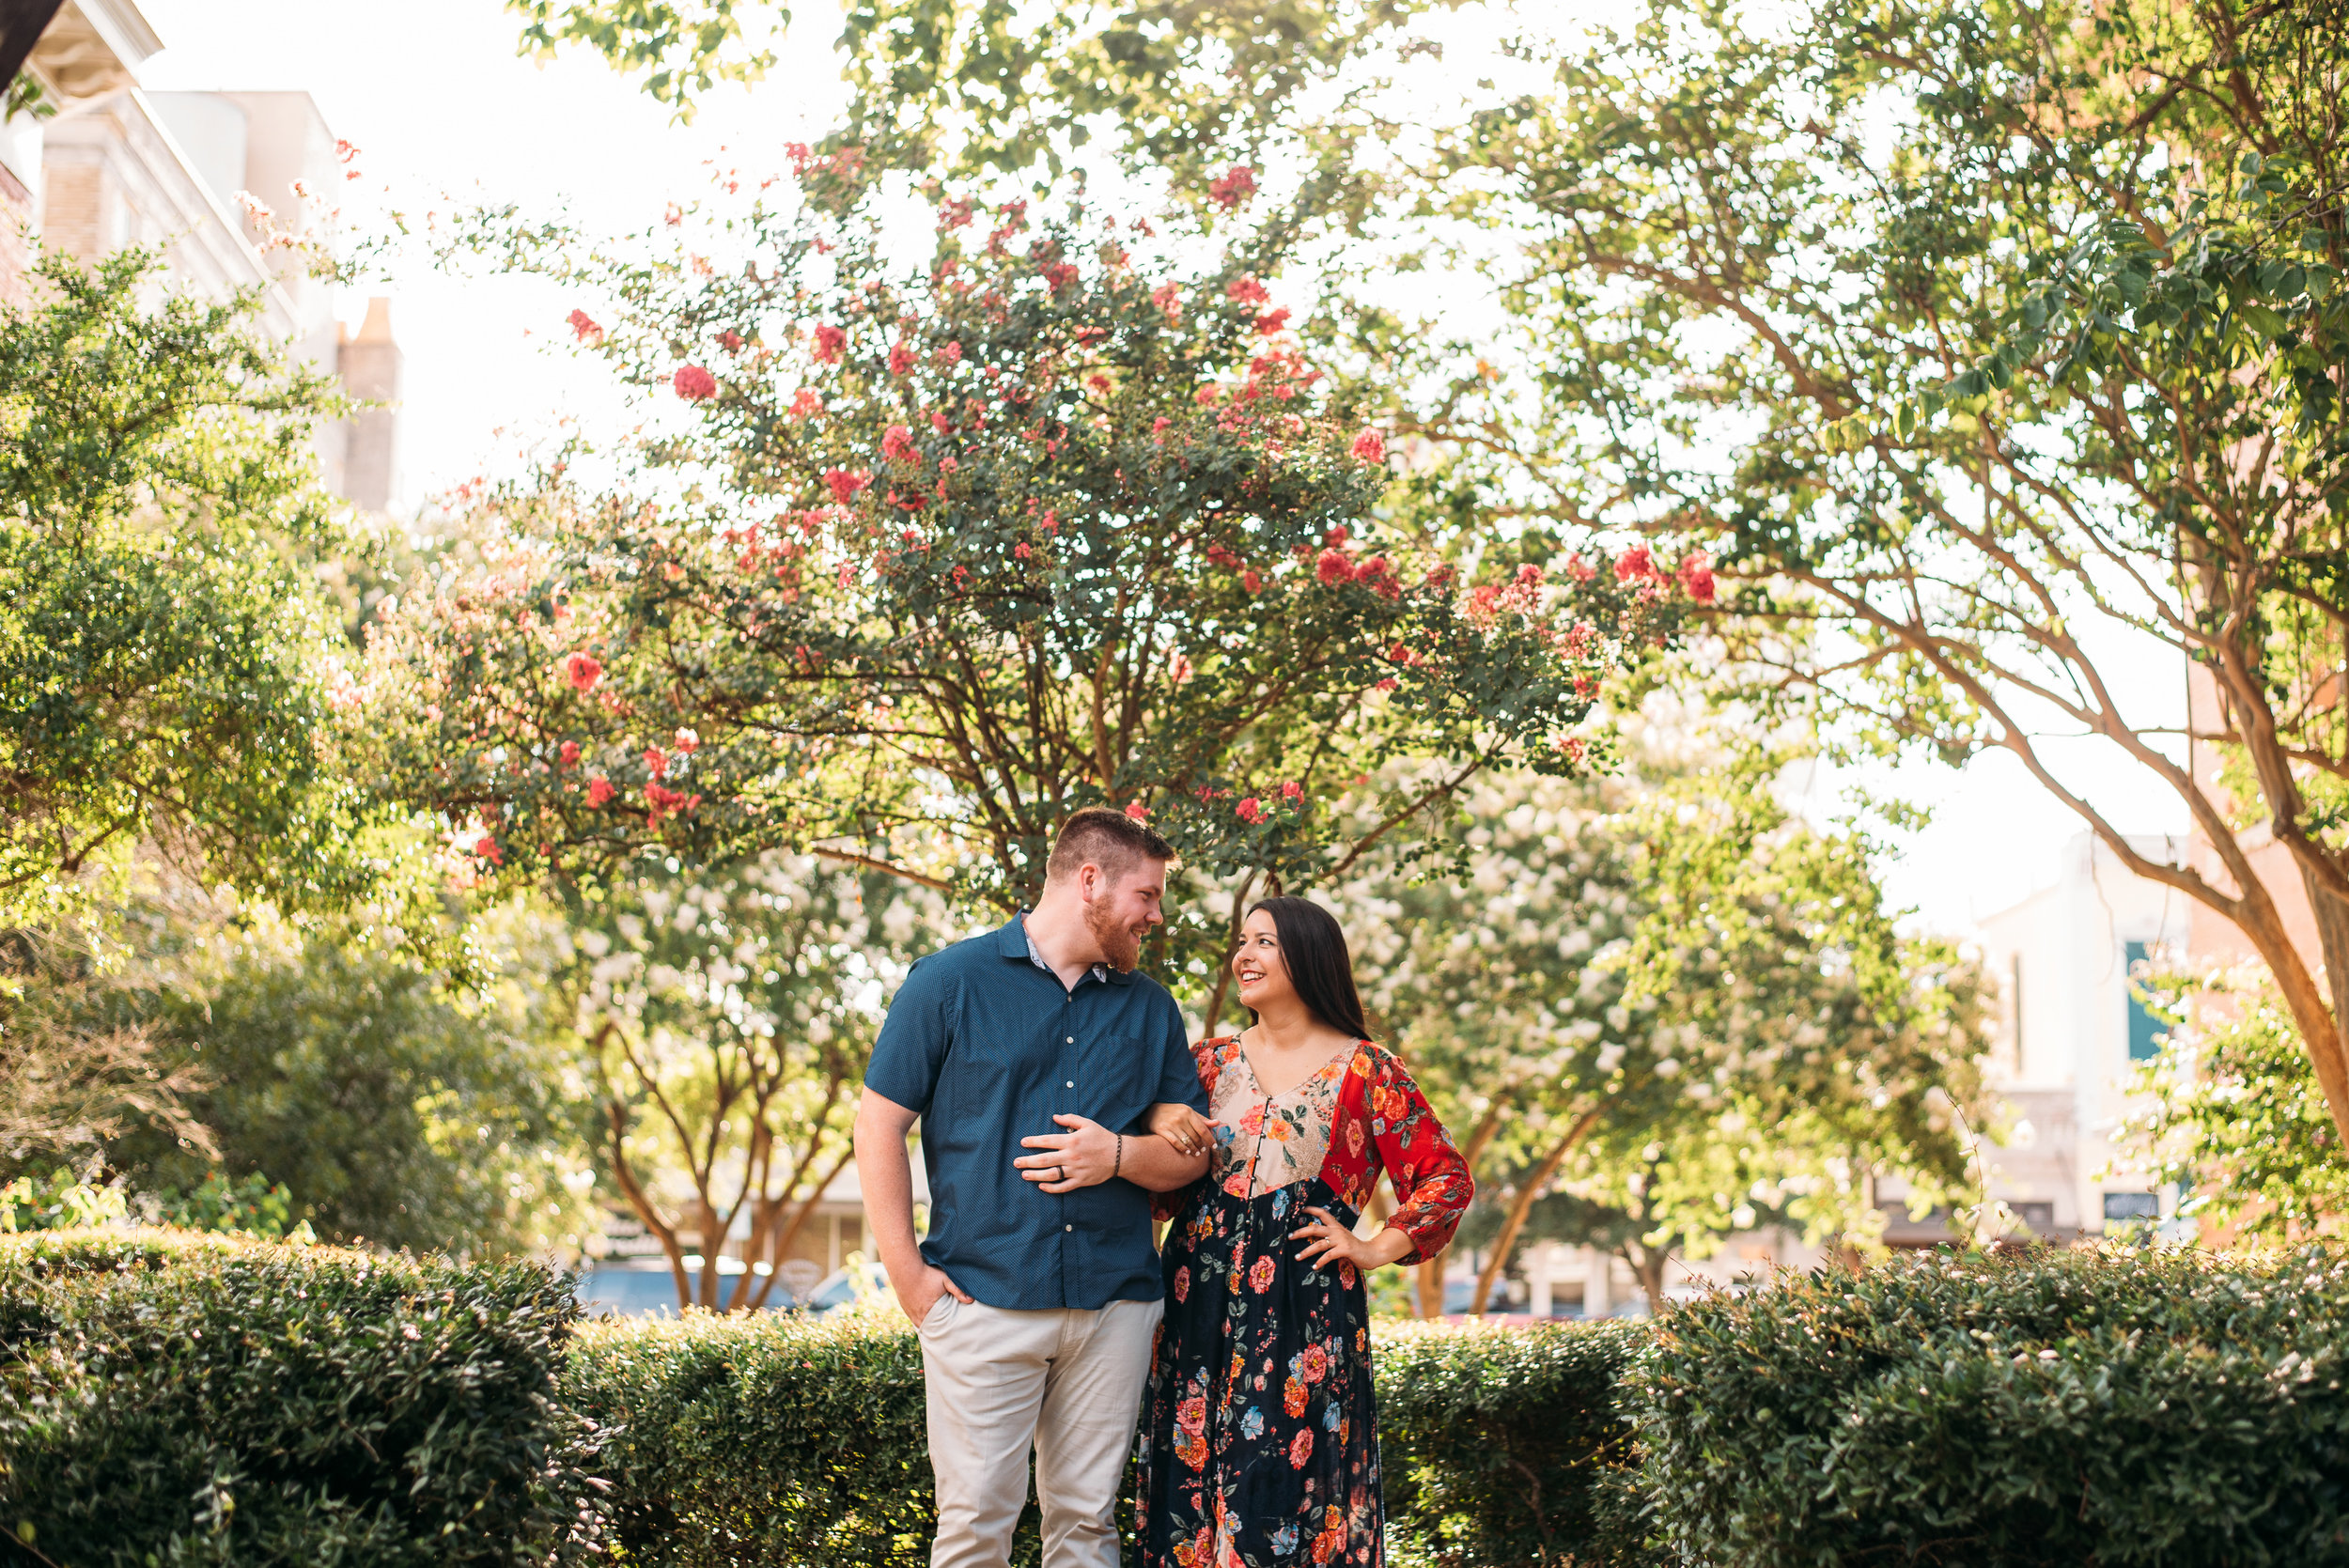 Downtown-Bryan-Engagement-George-Bush-Library-Texas-A&M-University-College-Station-Wedding-Photographer-San-Angel-Photo-Mark-Abigail-Jake-10.jpg